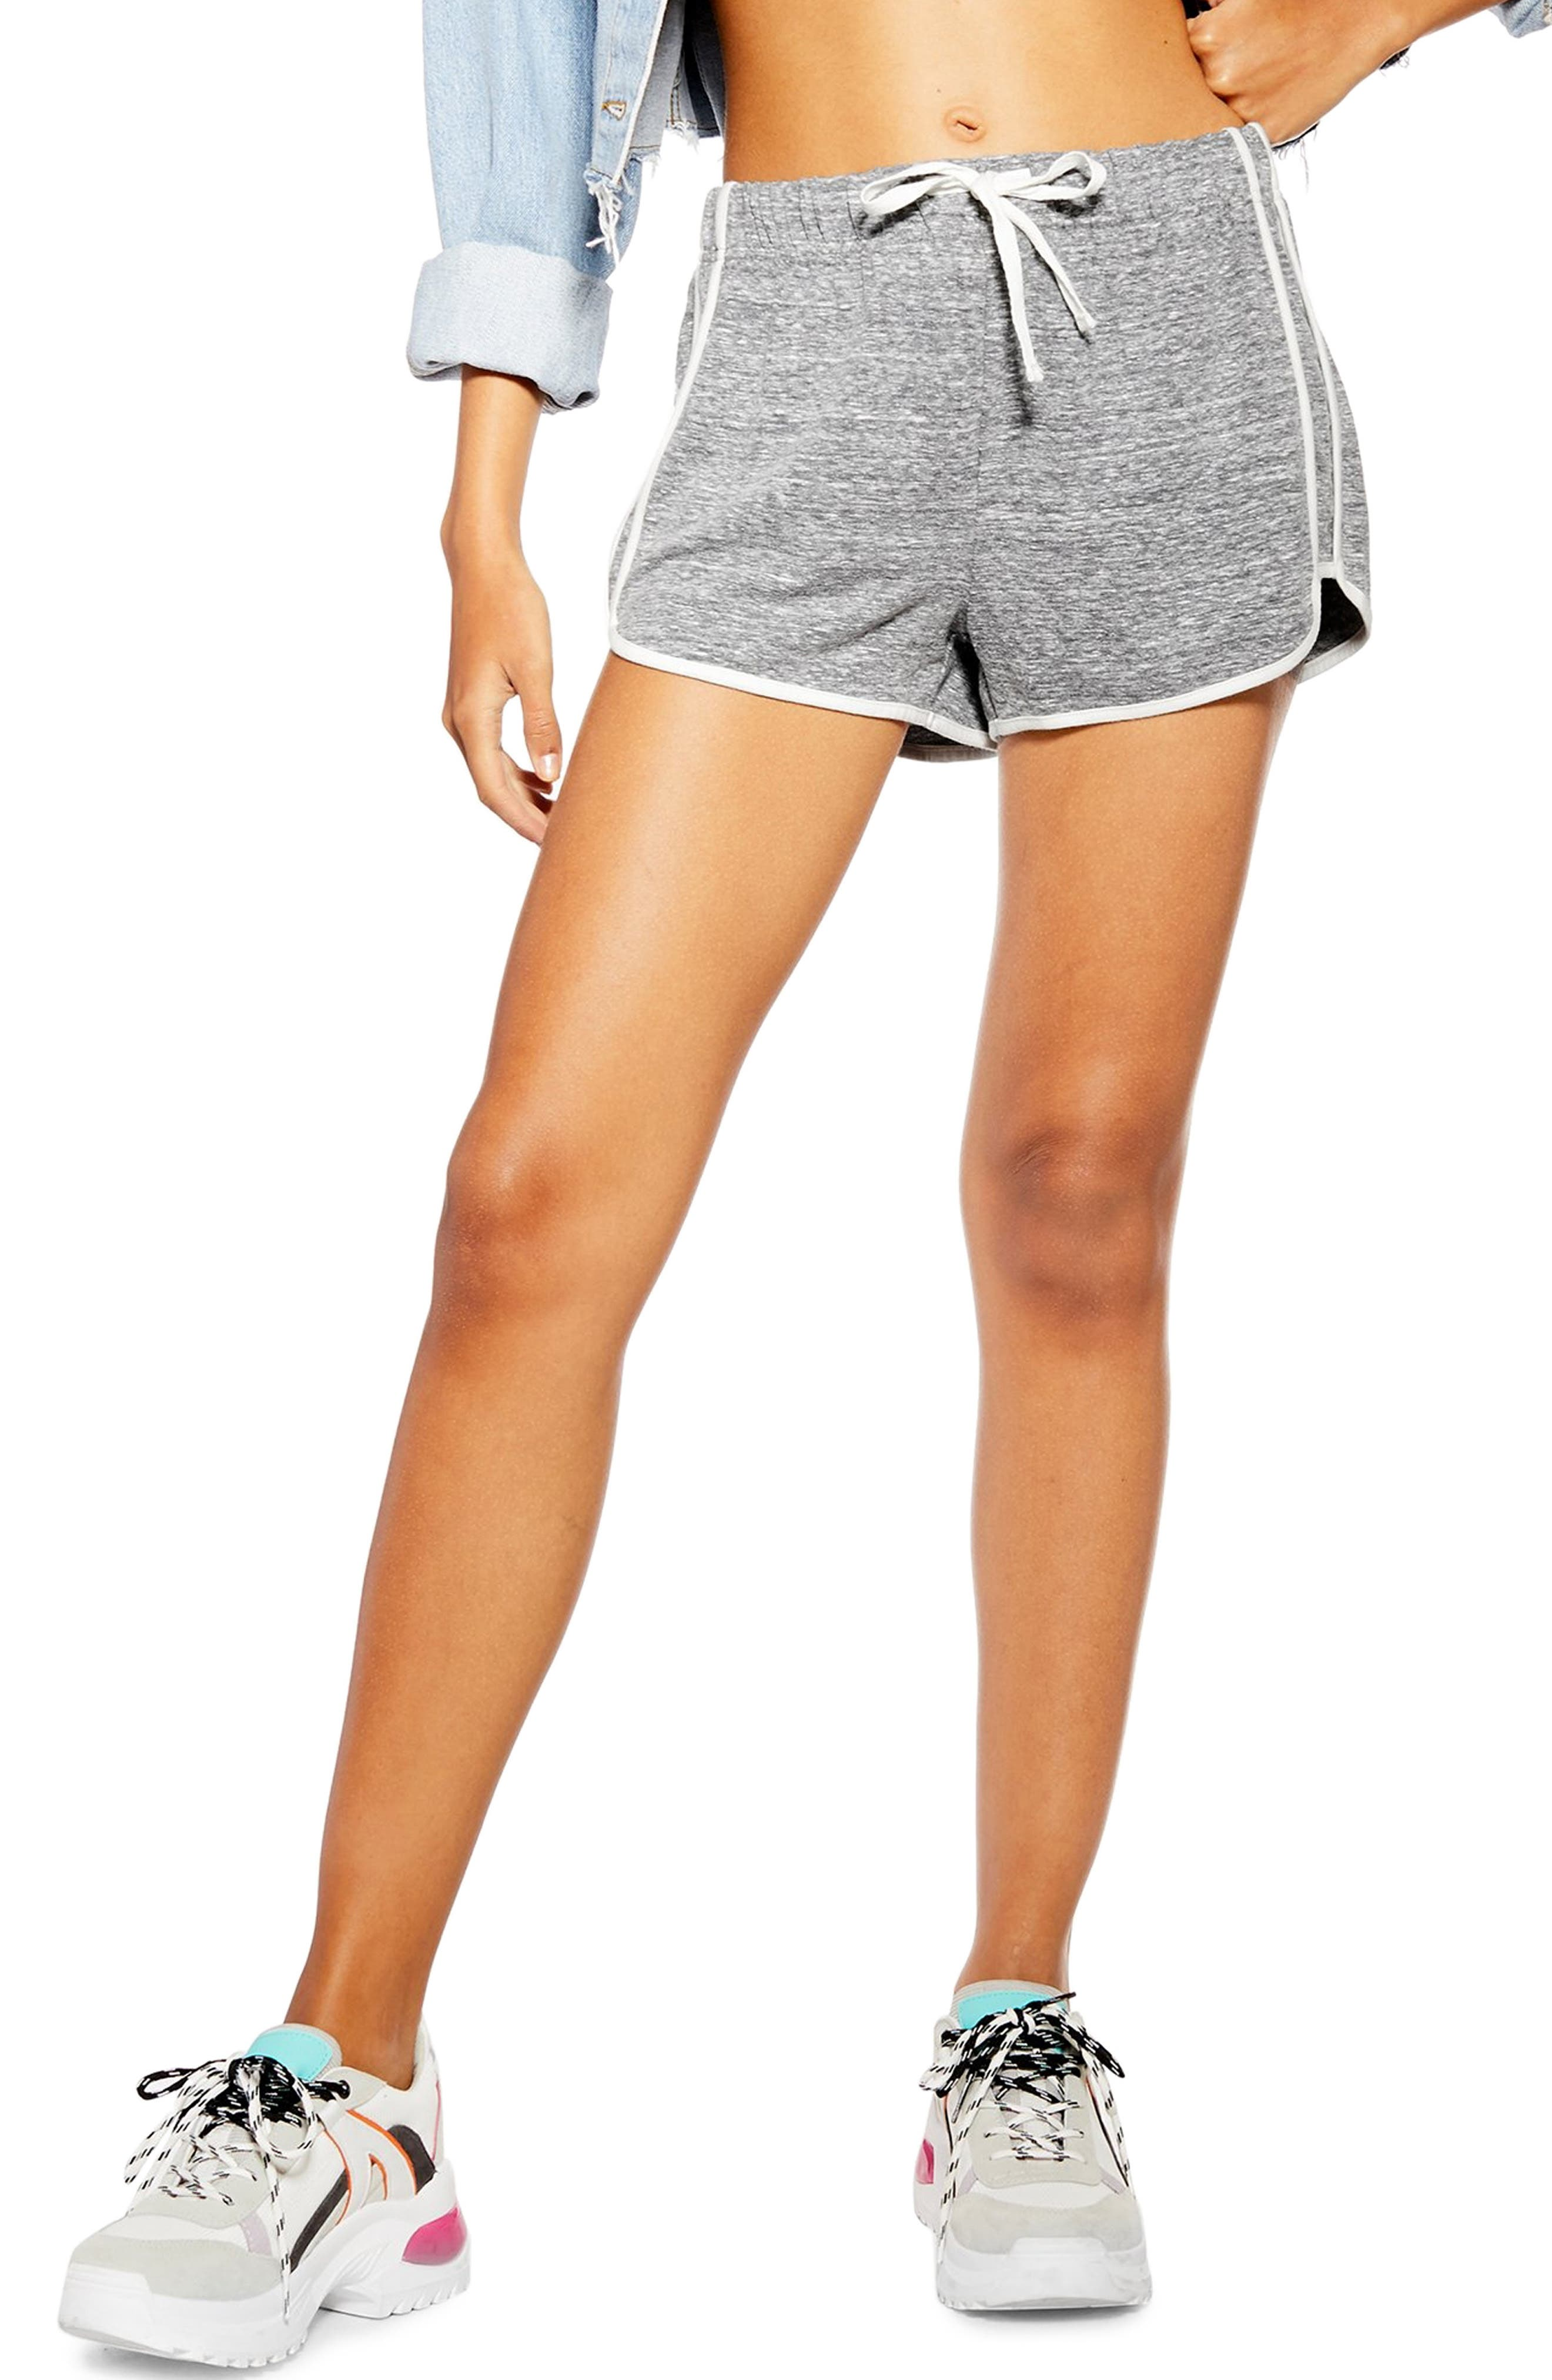 Topshop Waffle Weave Runner Shorts Discount